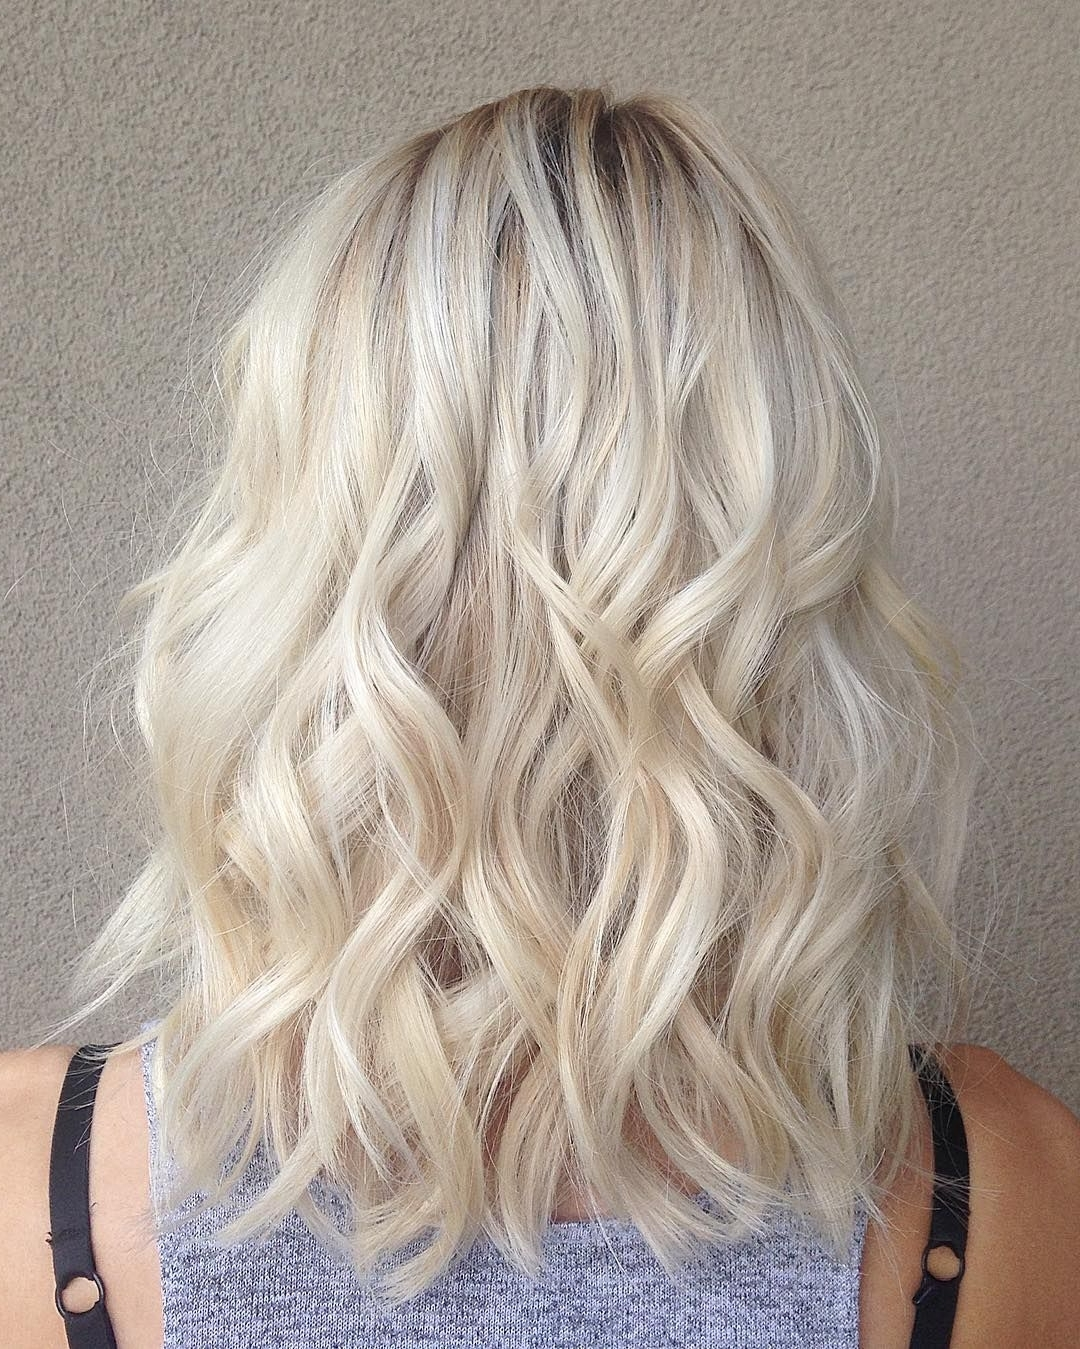 Widely Used Casual Bright Waves Blonde Hairstyles With Bangs Intended For How To Take Care Of Hair After Temporary Straightening And Keep It (View 19 of 20)